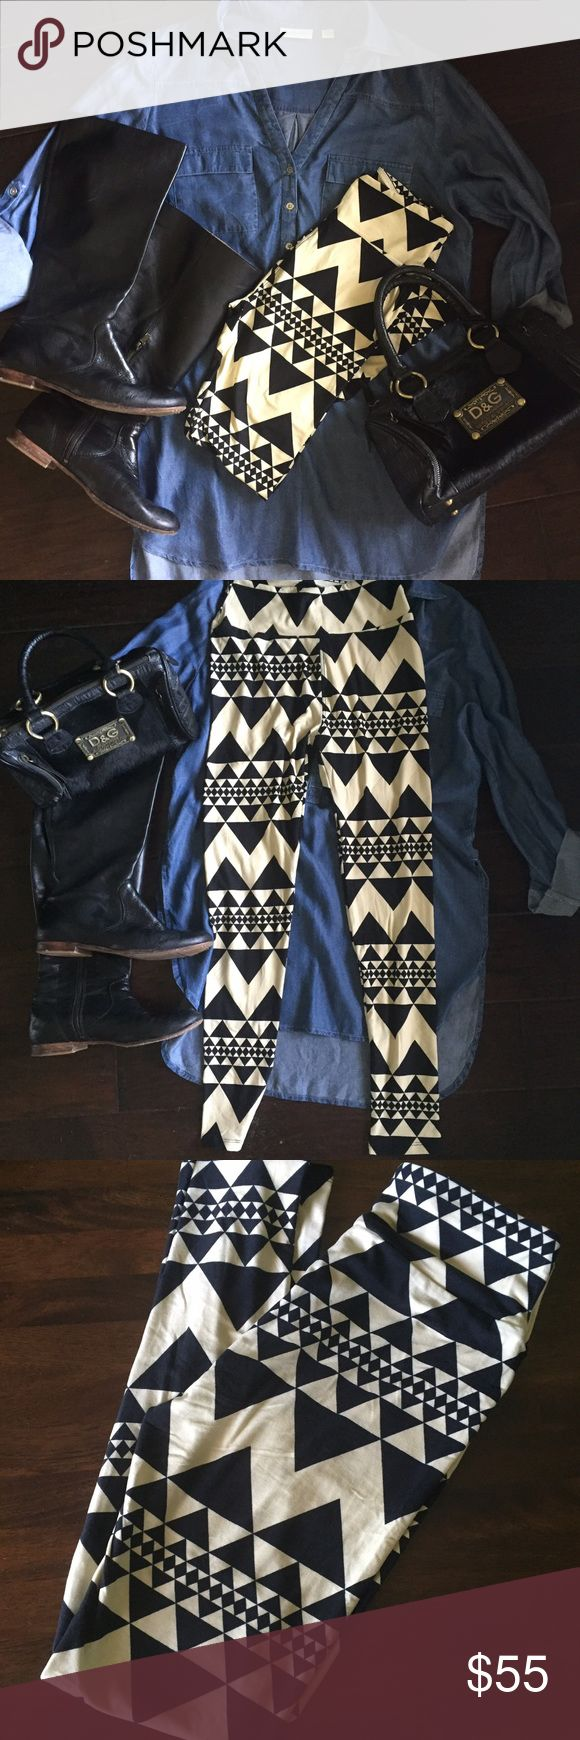 🦄🦄🦄 BNWT LulaRoe OS Leggings Black&Ivory Aztec Rare print. HTF pattern especially with it matched up across the legs. Buttery soft. Never worn. Made in China. Open to trades. Selling on eBay for $50+. LuLaRoe Pants Leggings